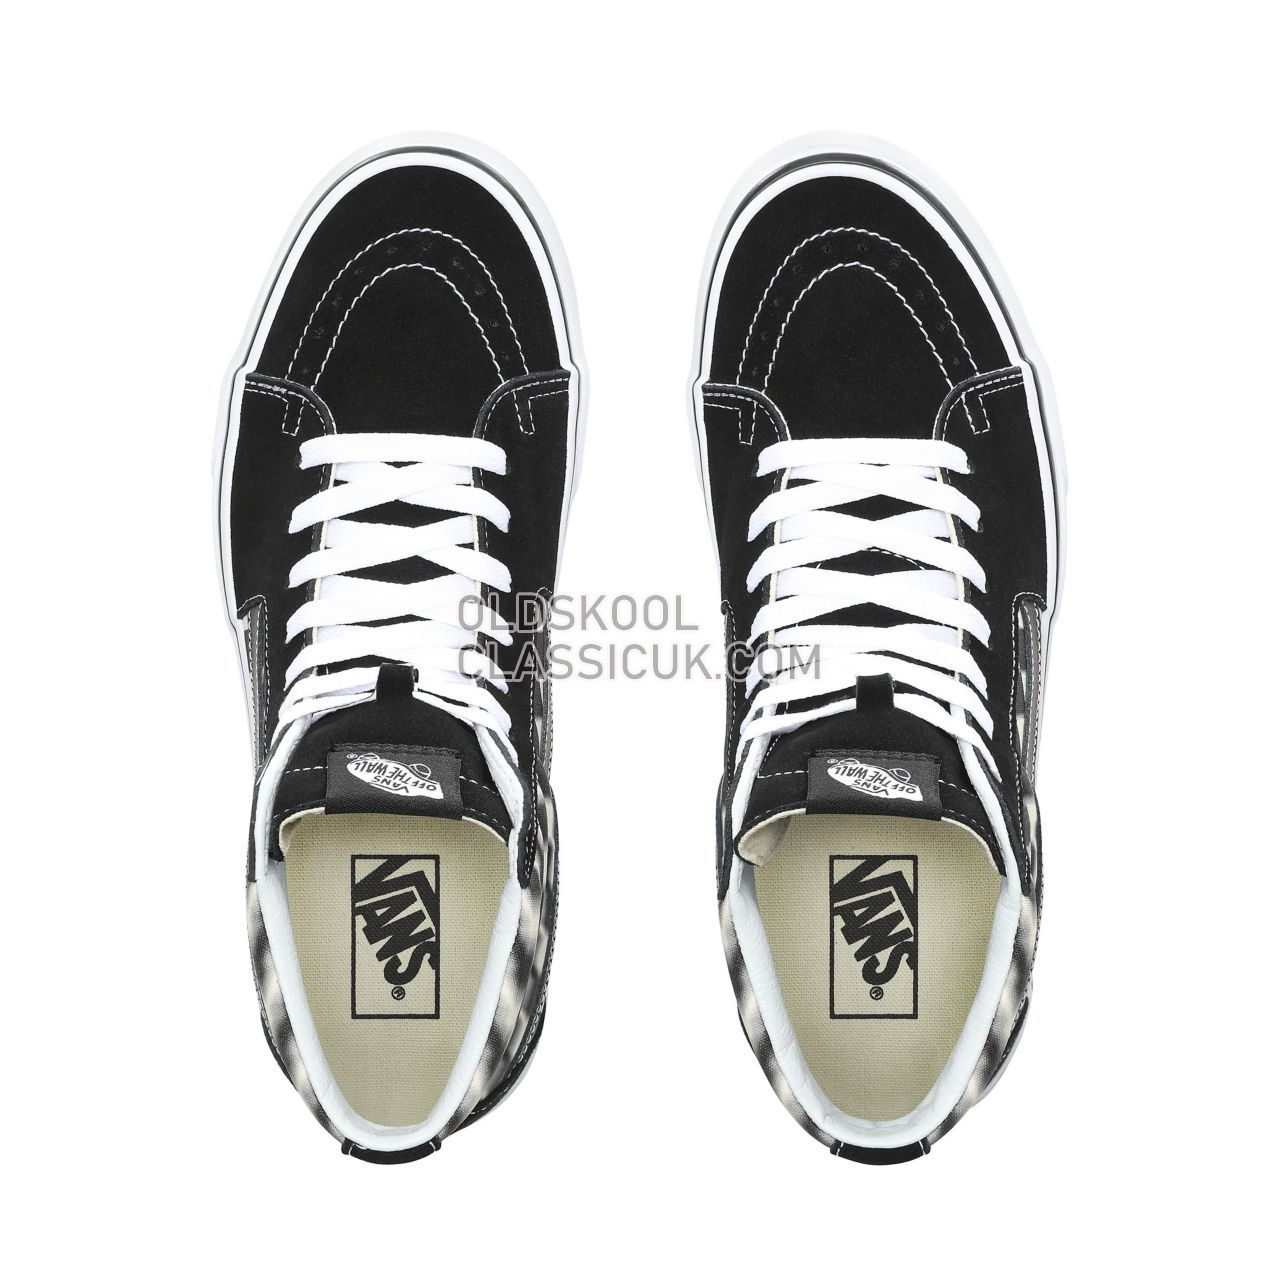 Vans Blur Check Sk8-Hi Sneakers Mens (Blur Check) Black/Classic White VN0A38GEVJM Shoes